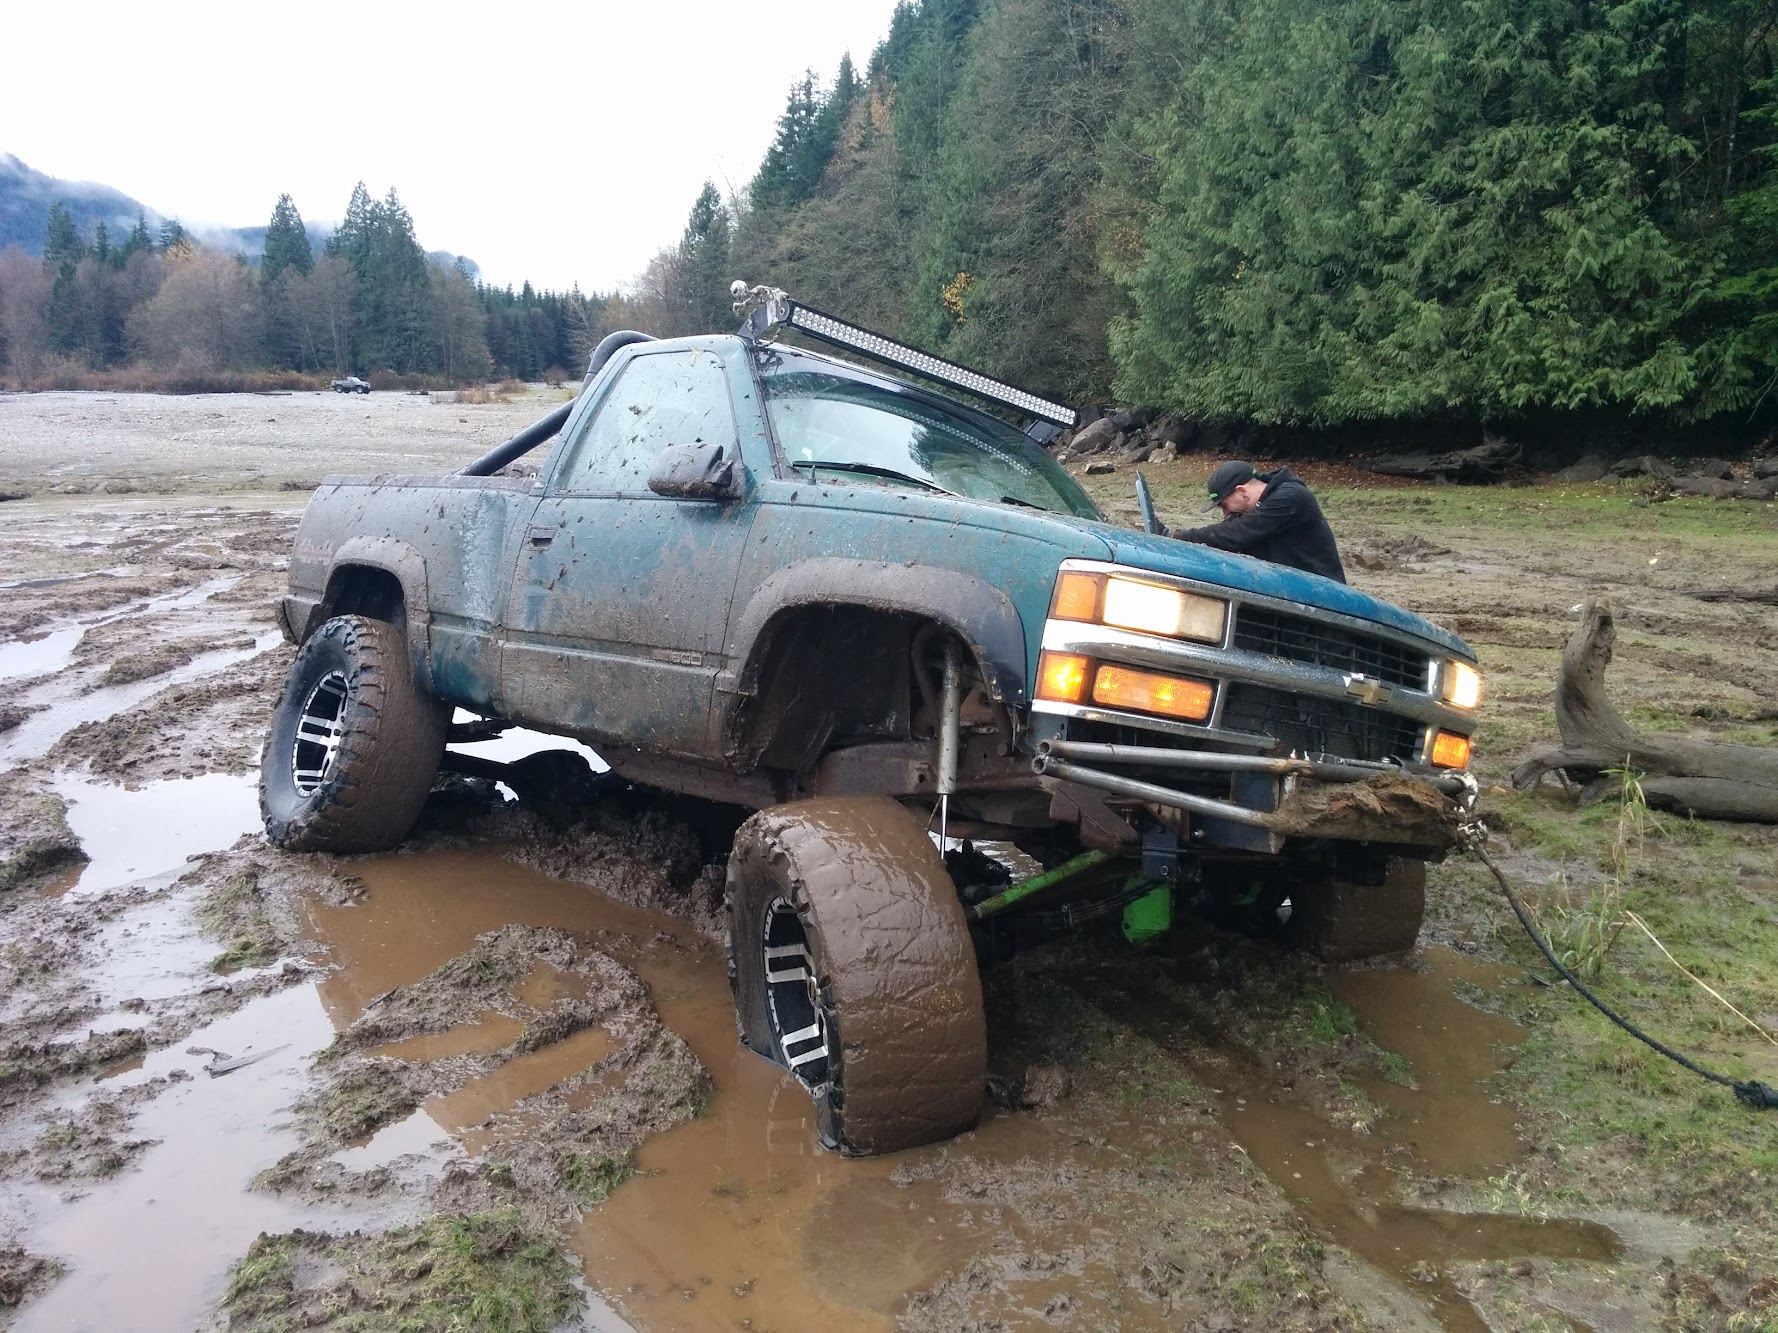 97 K1500 4 3 to 6 0L swap - Pirate4x4 Com : 4x4 and Off-Road